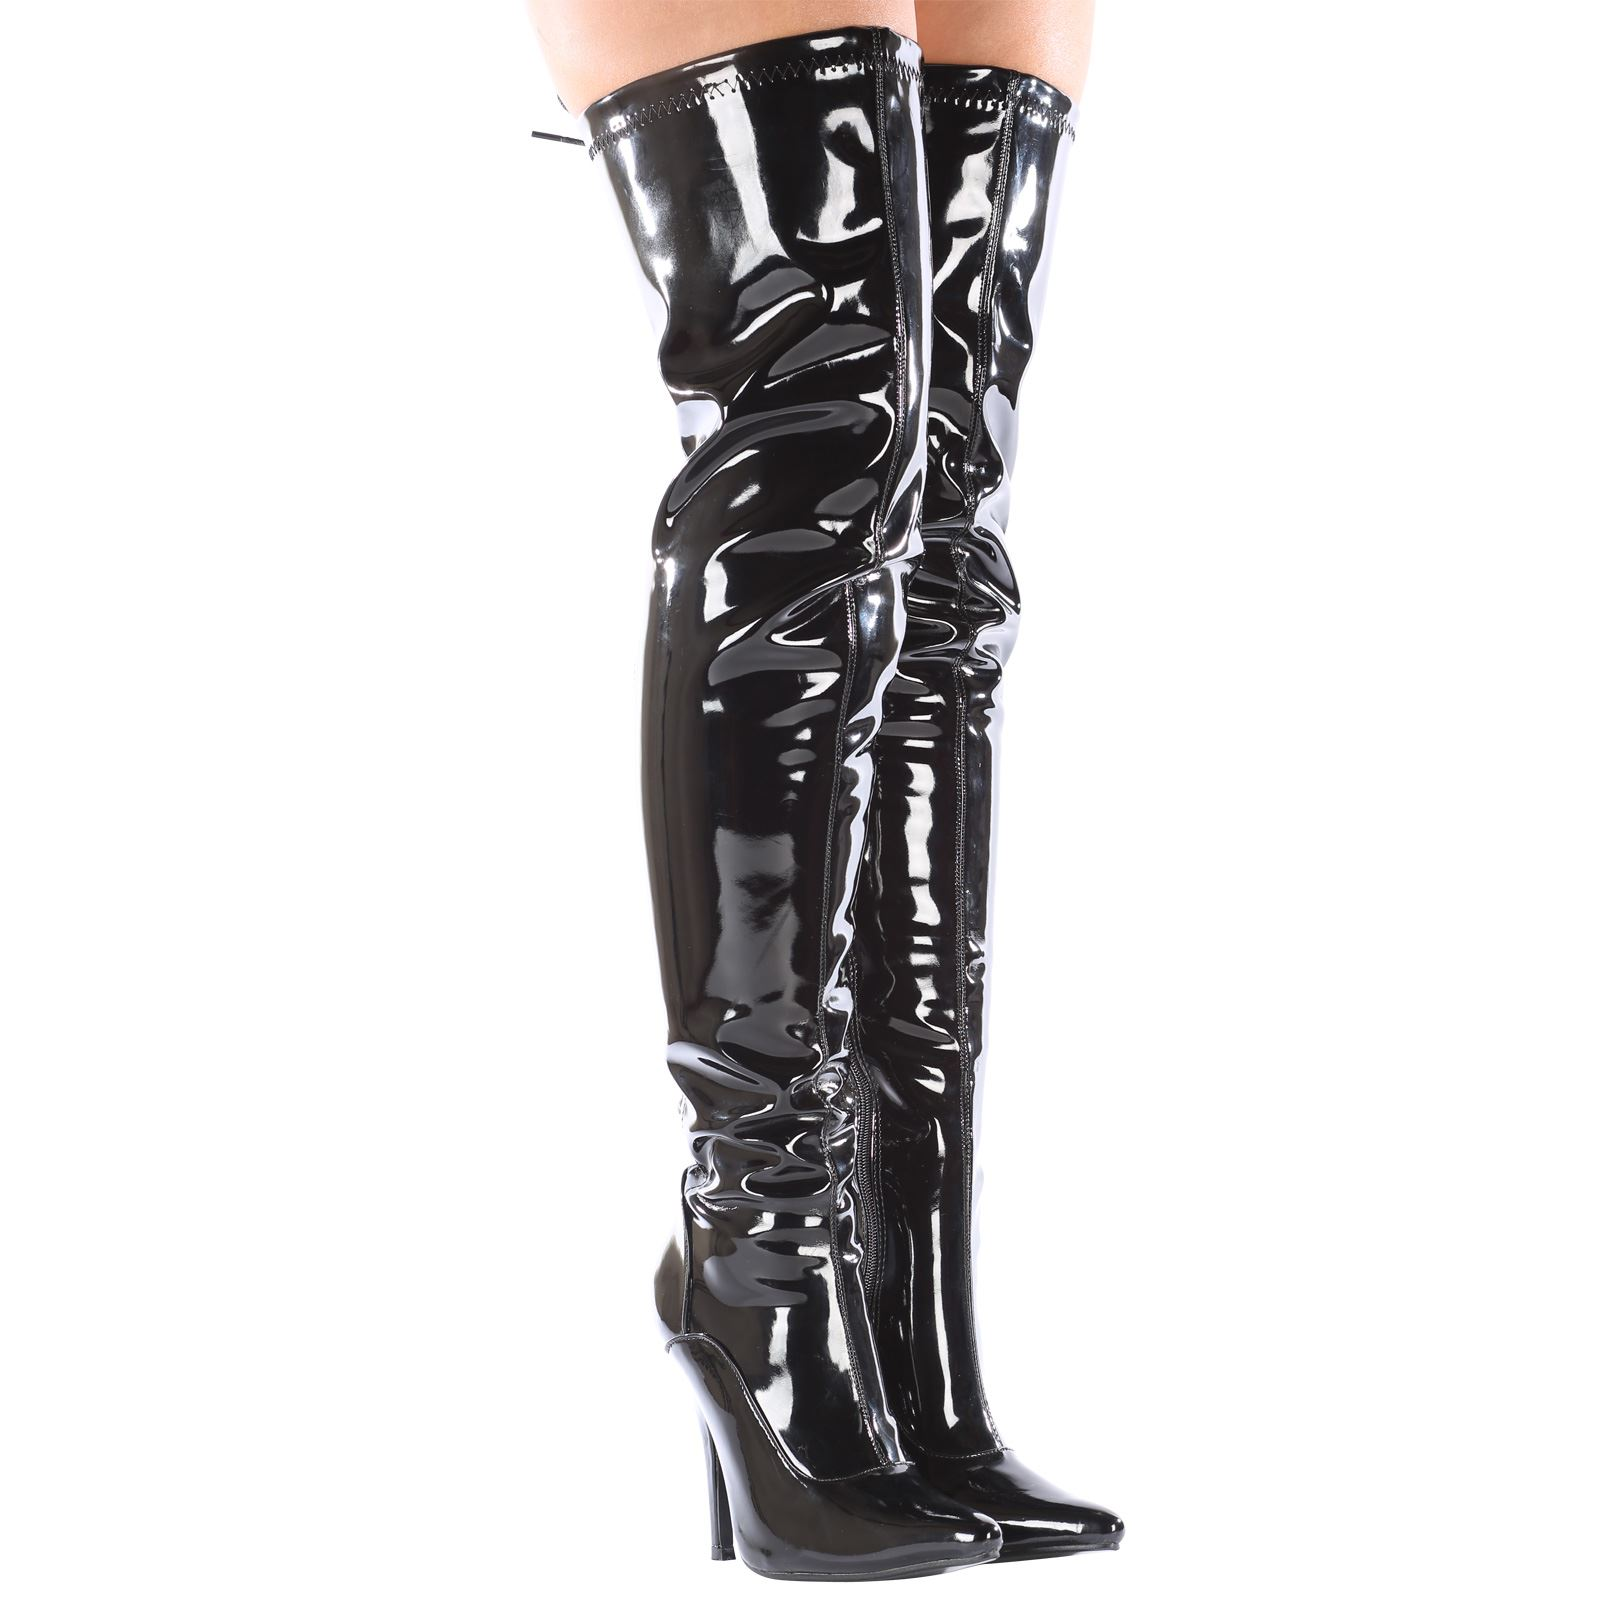 26c062ad37d Anastasia Stiletto Heels Lace Back Zip Up Ladies Sexy Thigh High ...